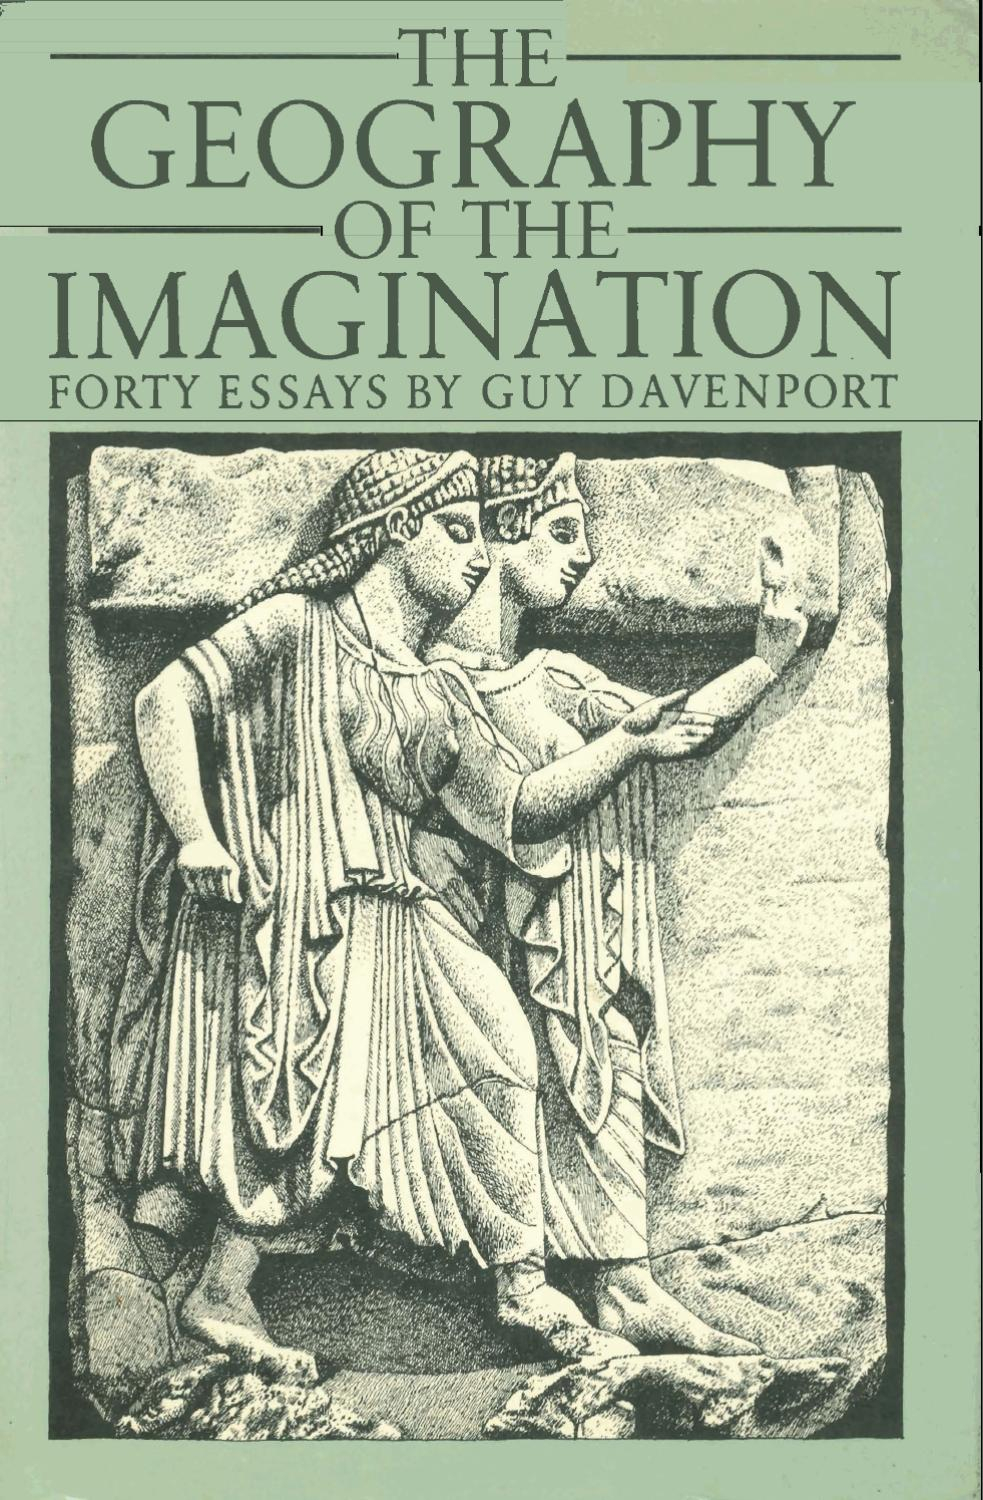 The Geography Of The Imagination (View 11 of 20)